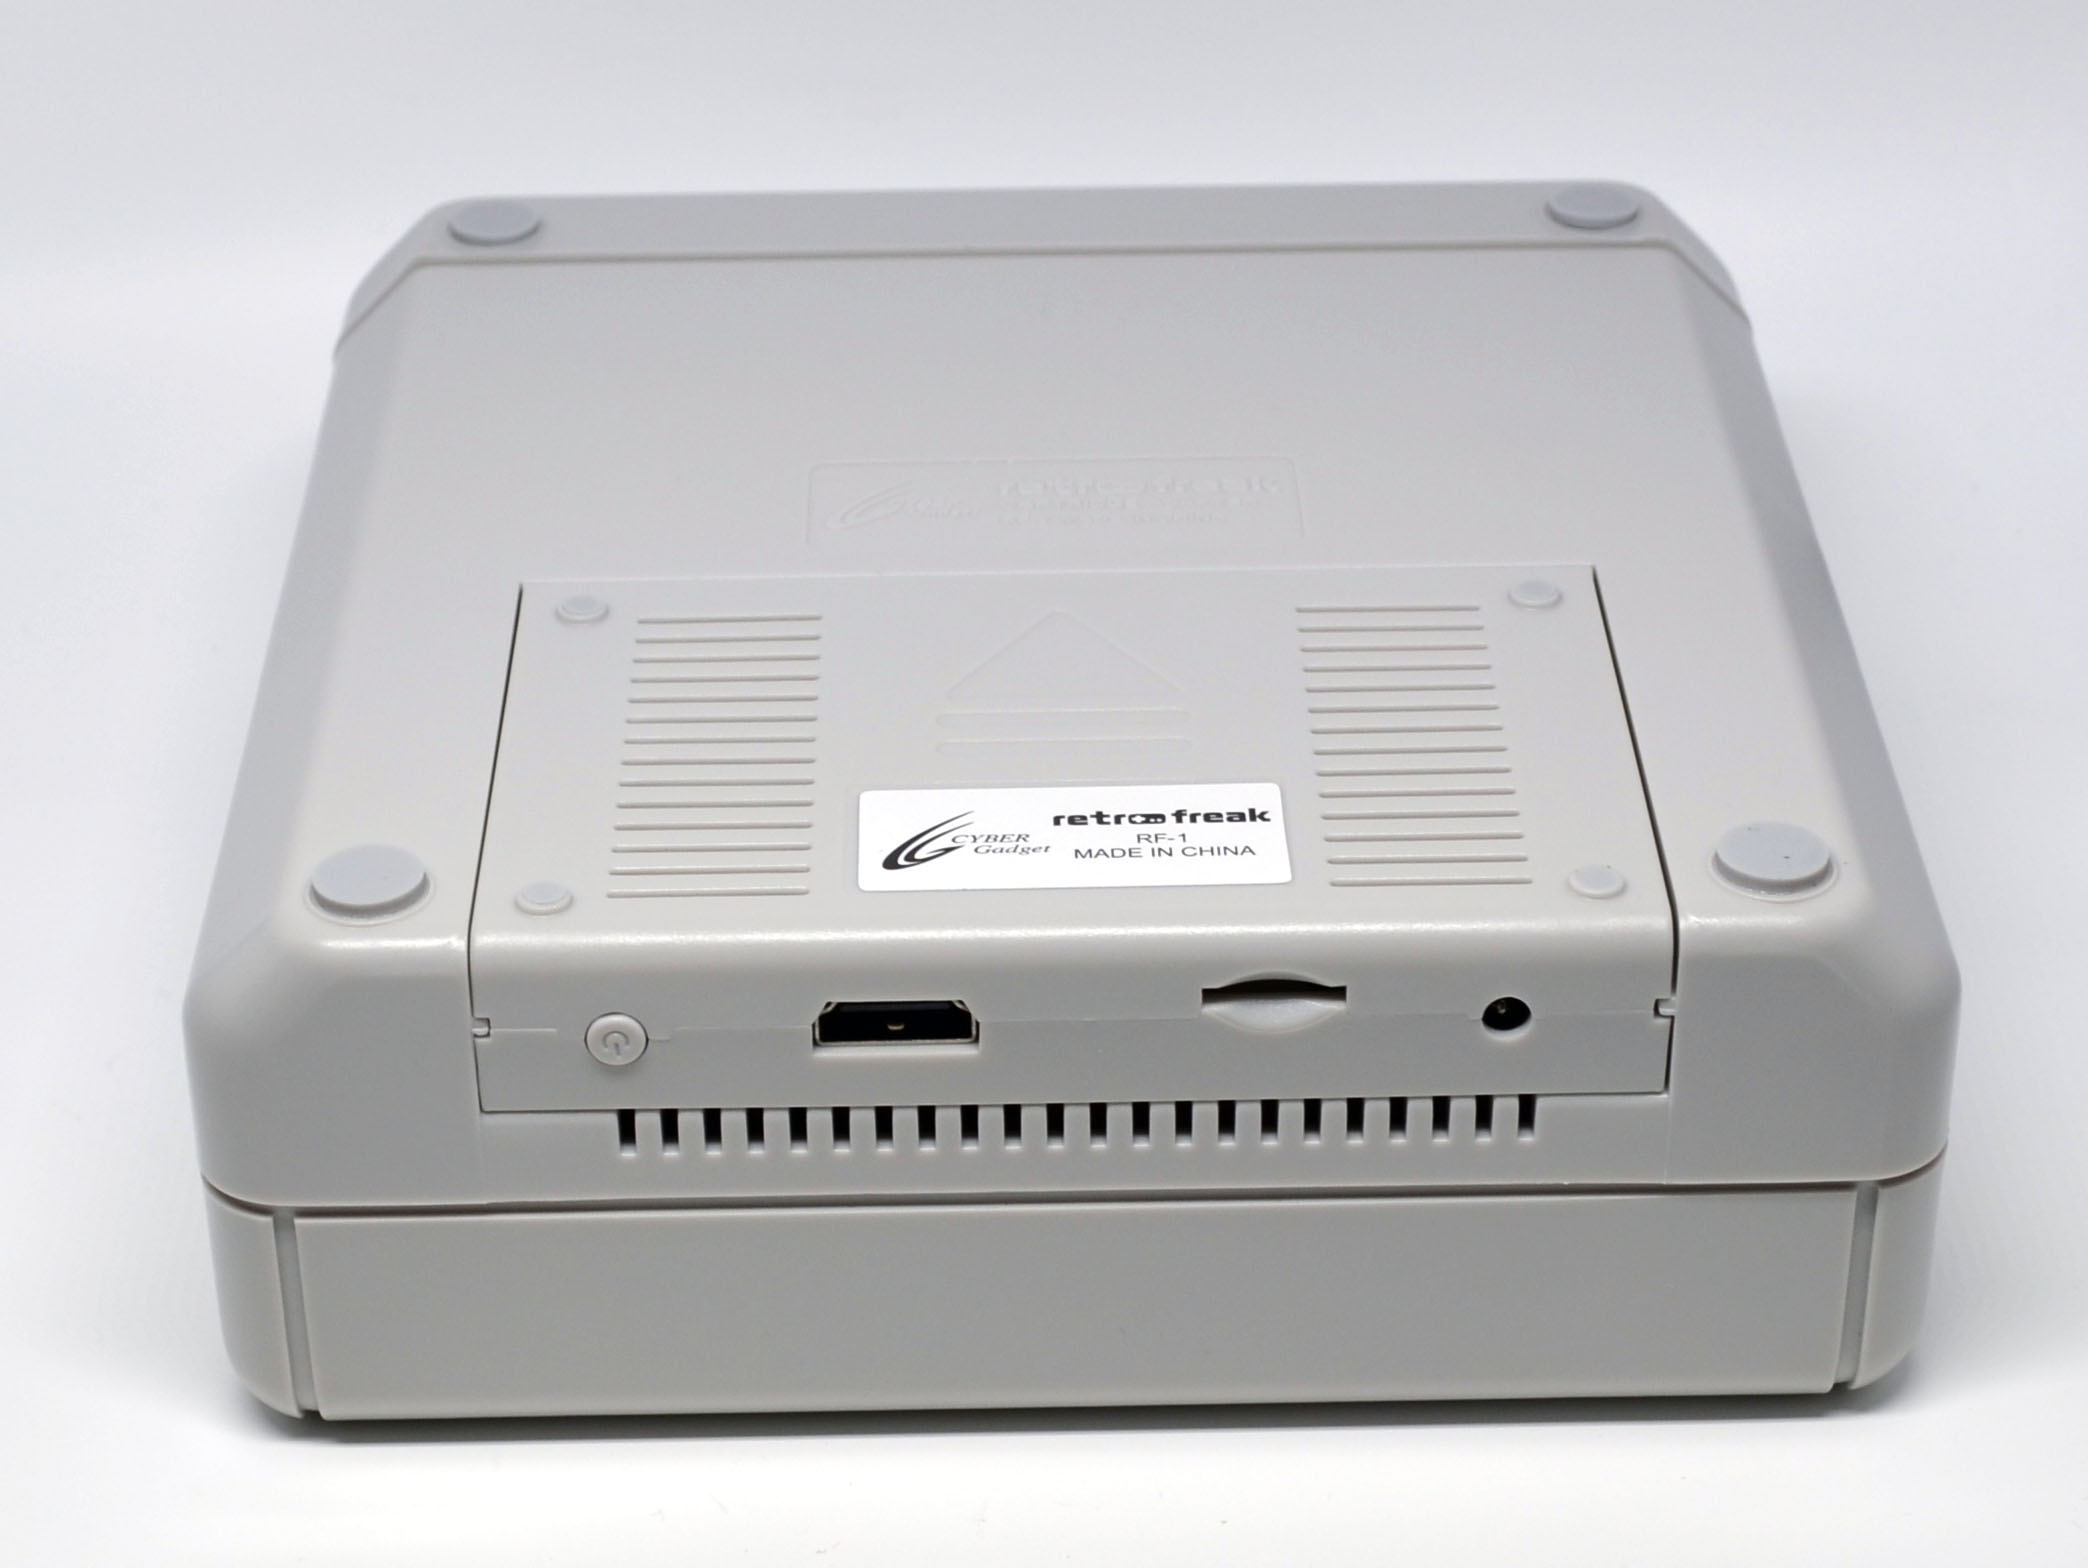 The console inserted into the cartridge unit.